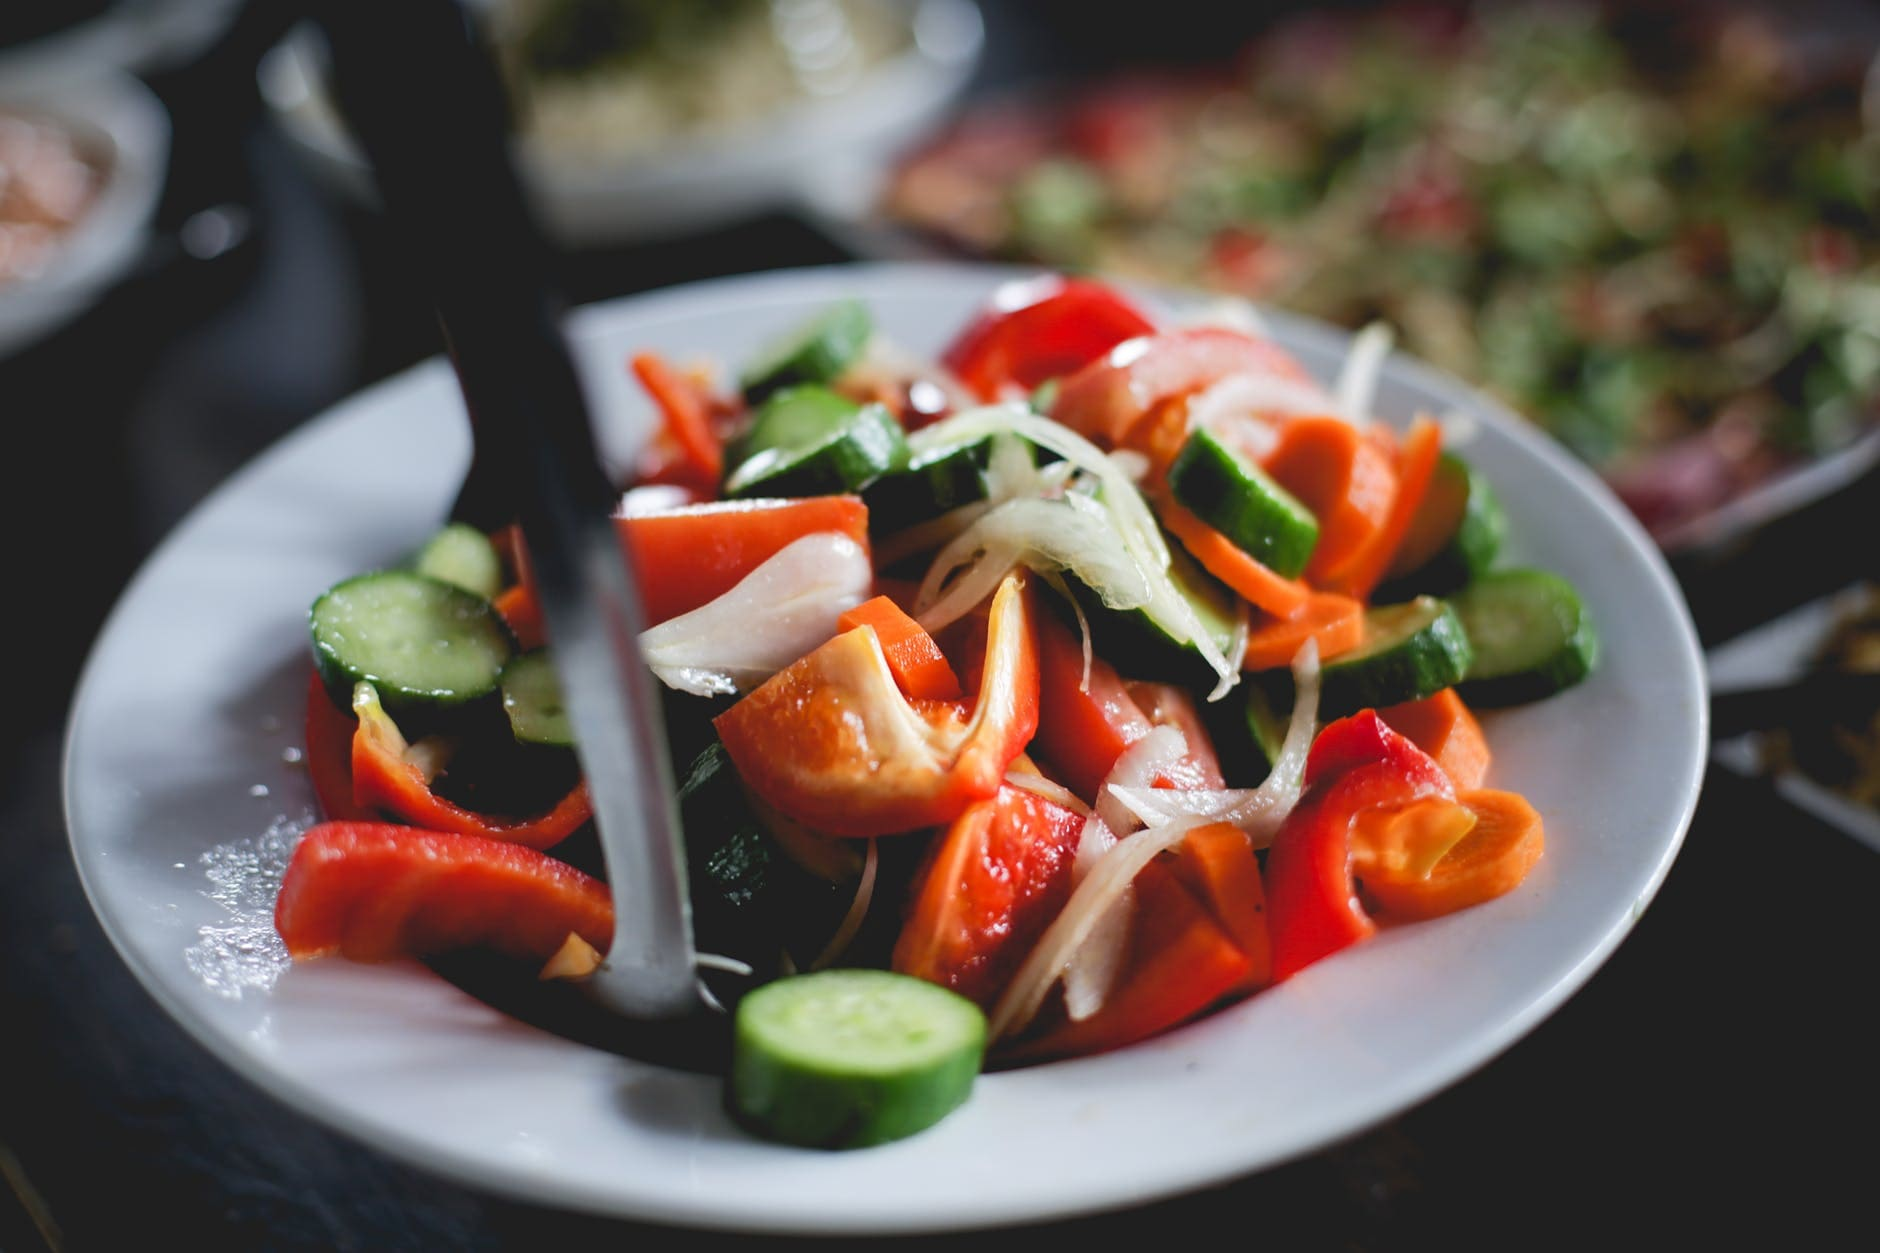 How to make a healthy pepper salad